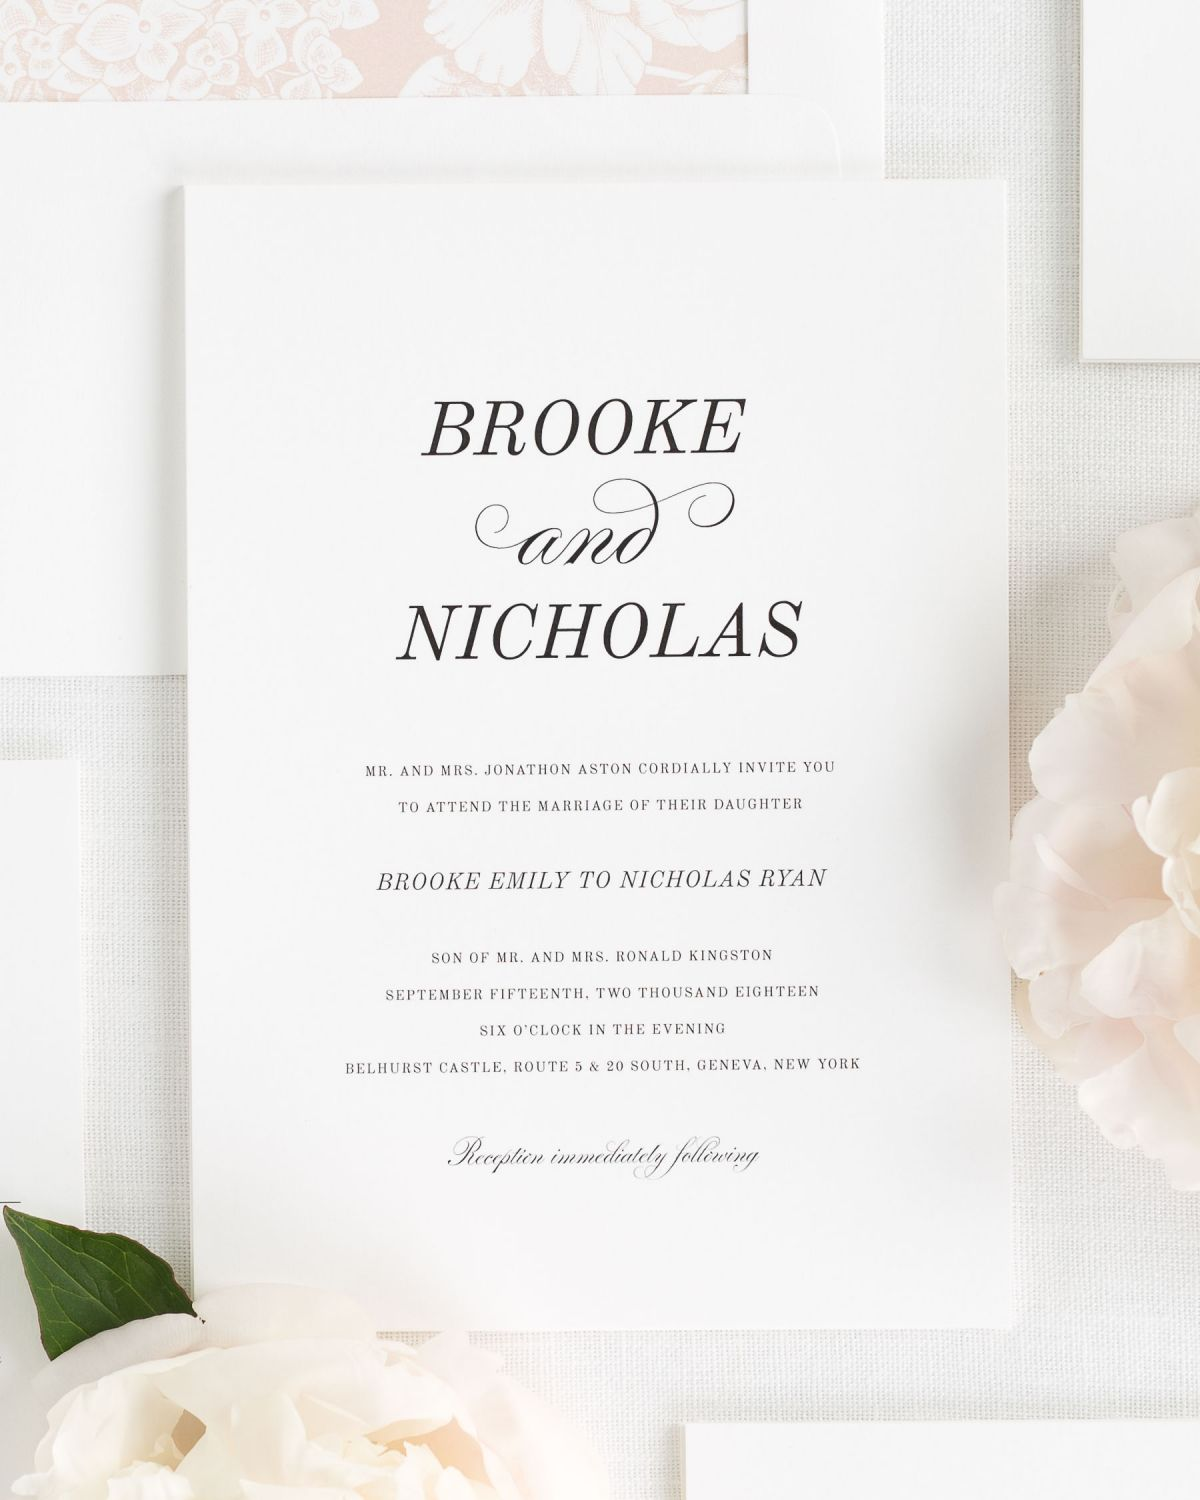 Small Ceremony Big Reception Invitations: Classic Romance Wedding Invitations